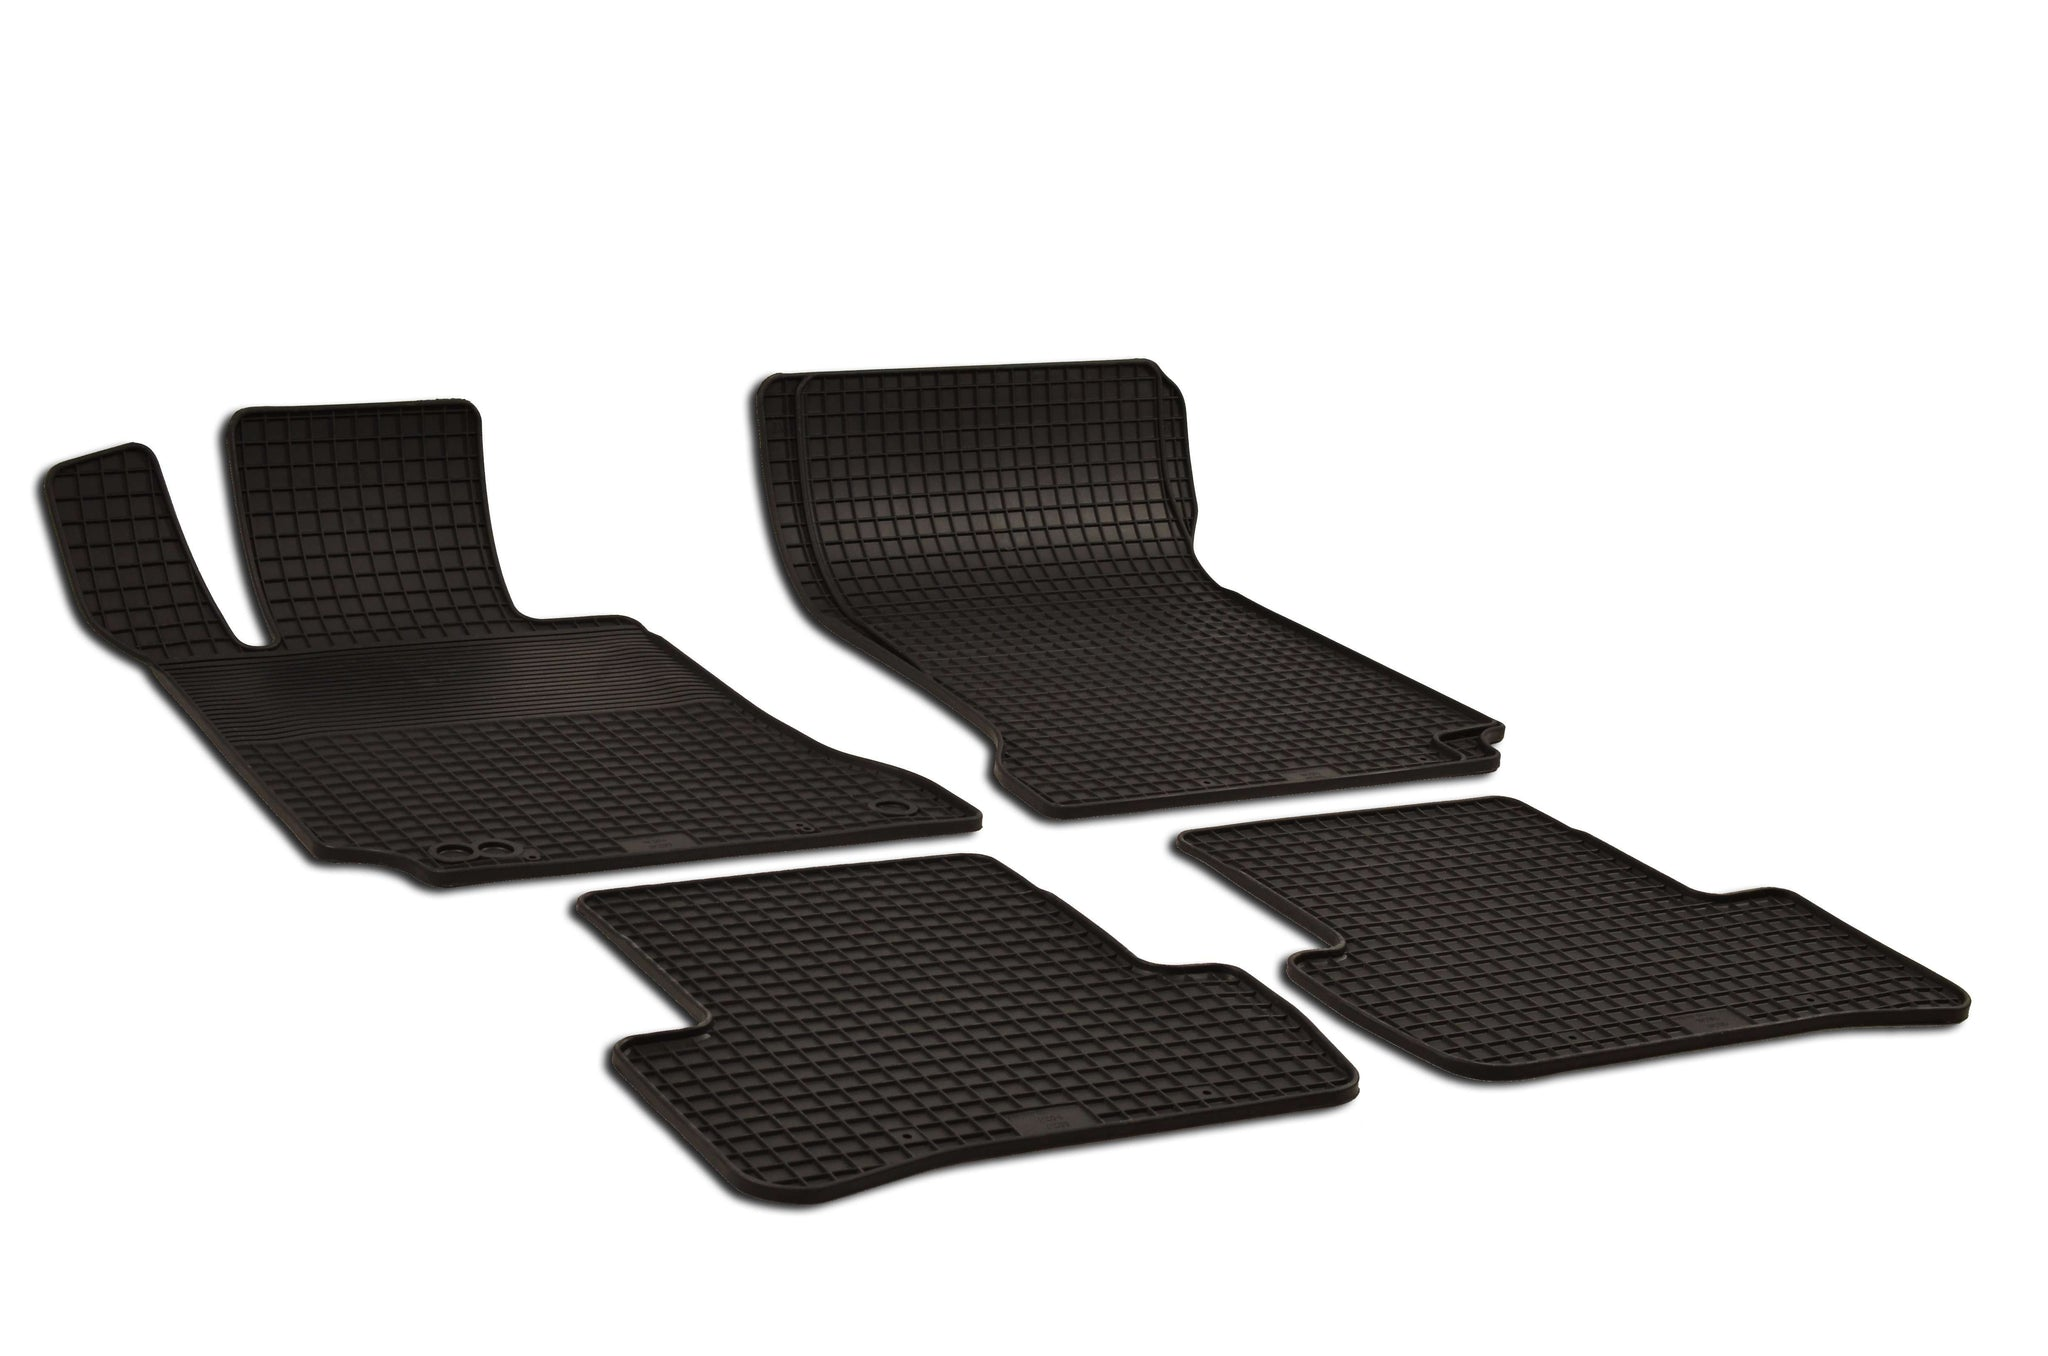 Mercedes C250 2014 Sedan Luxury 204.047 Set of 4 Black Rubber OE Fit All Weather Car Floor Mats